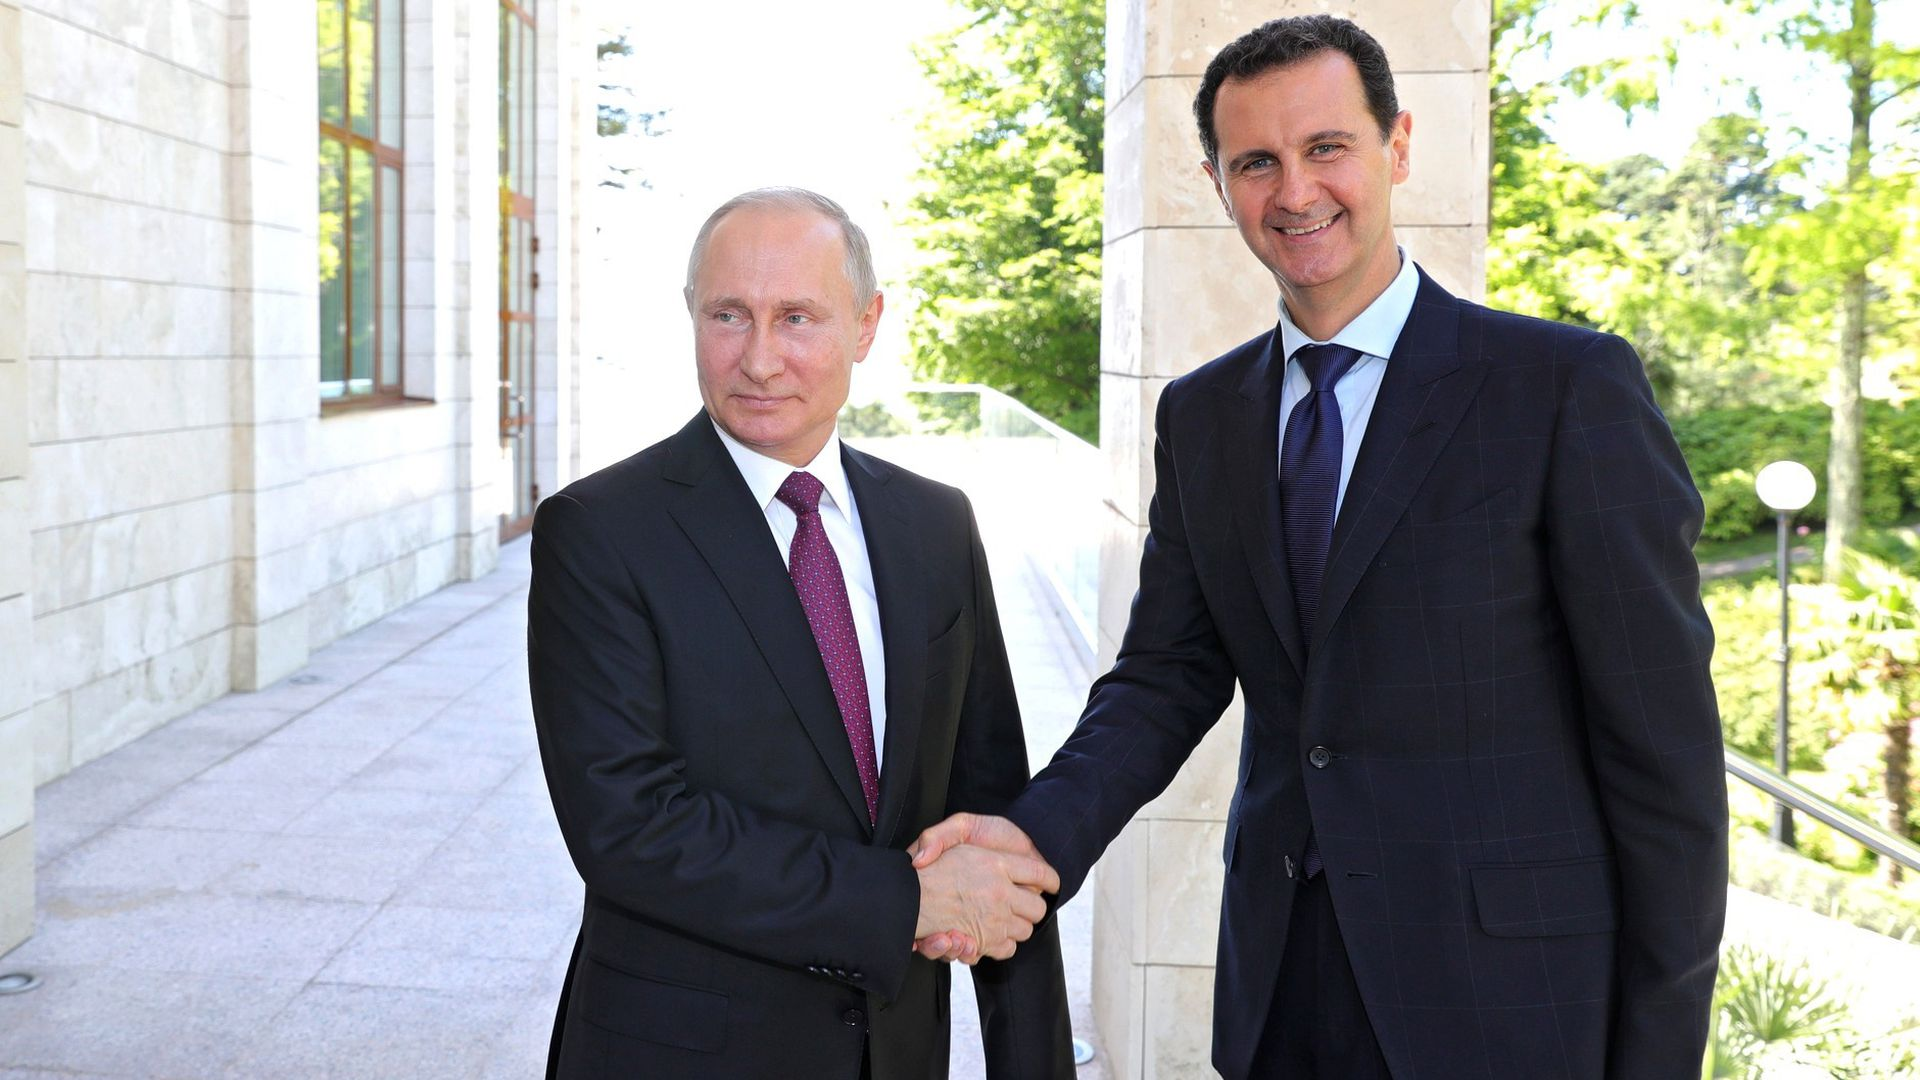 Russian President Vladimir Putin shaking hands with President of Syria Bashar Al-Assad in Sochi, Russia on May 17, 2018.